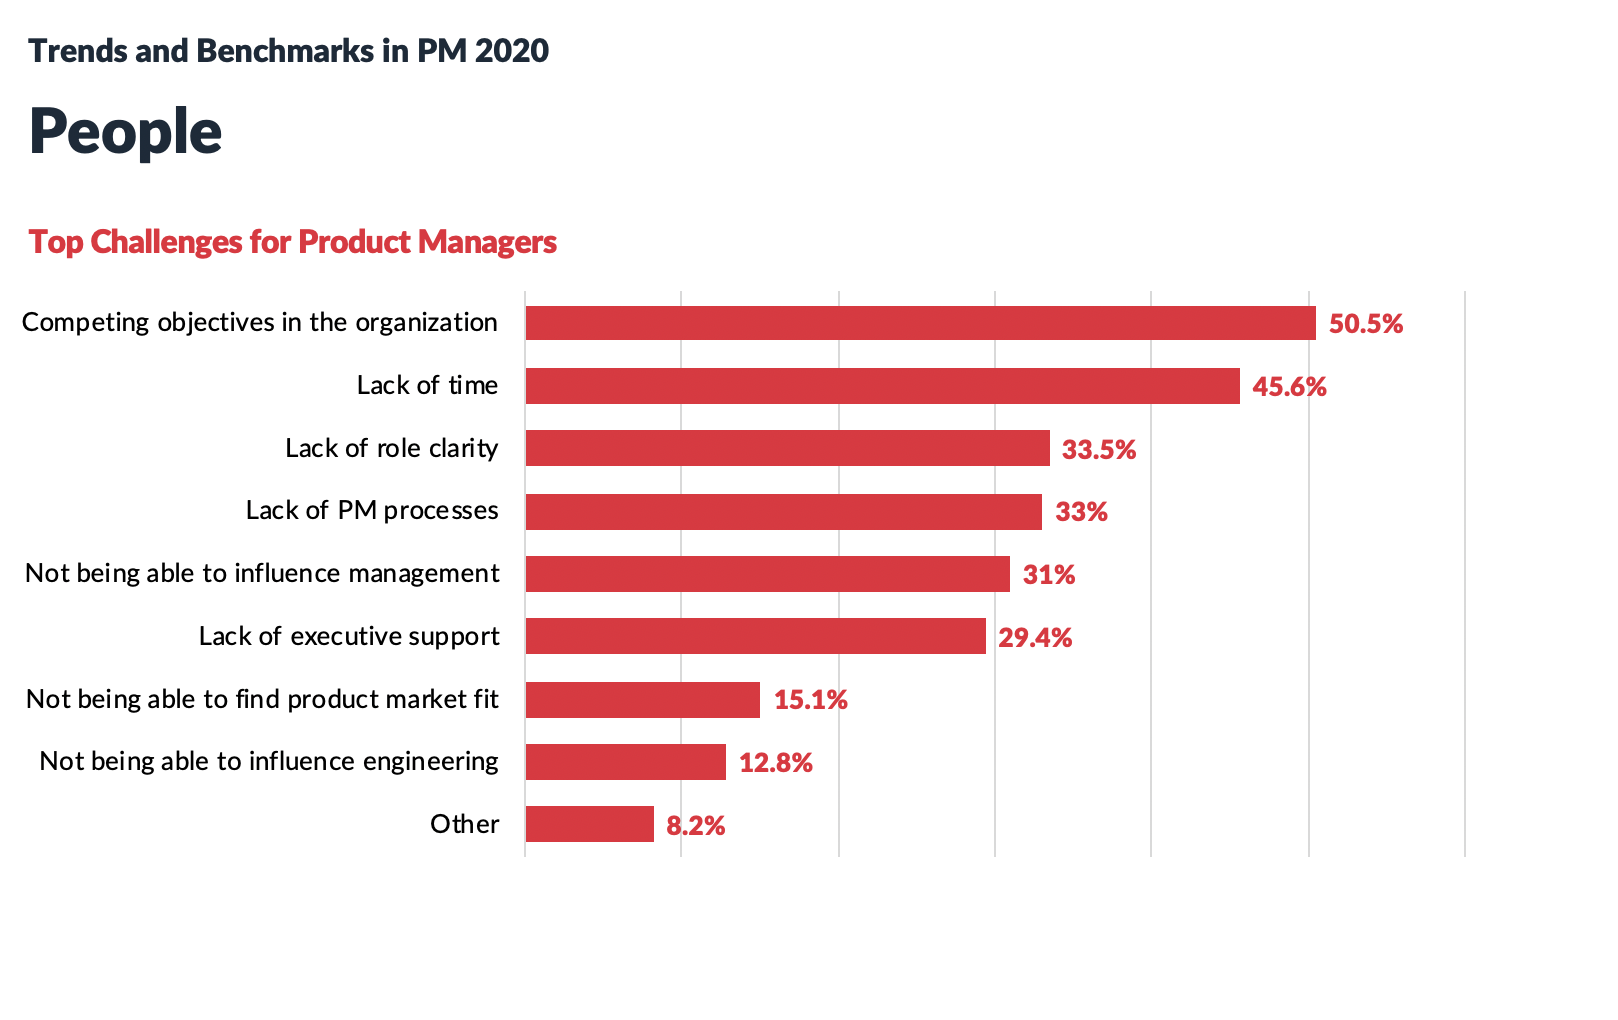 Top challenges for Product Managers